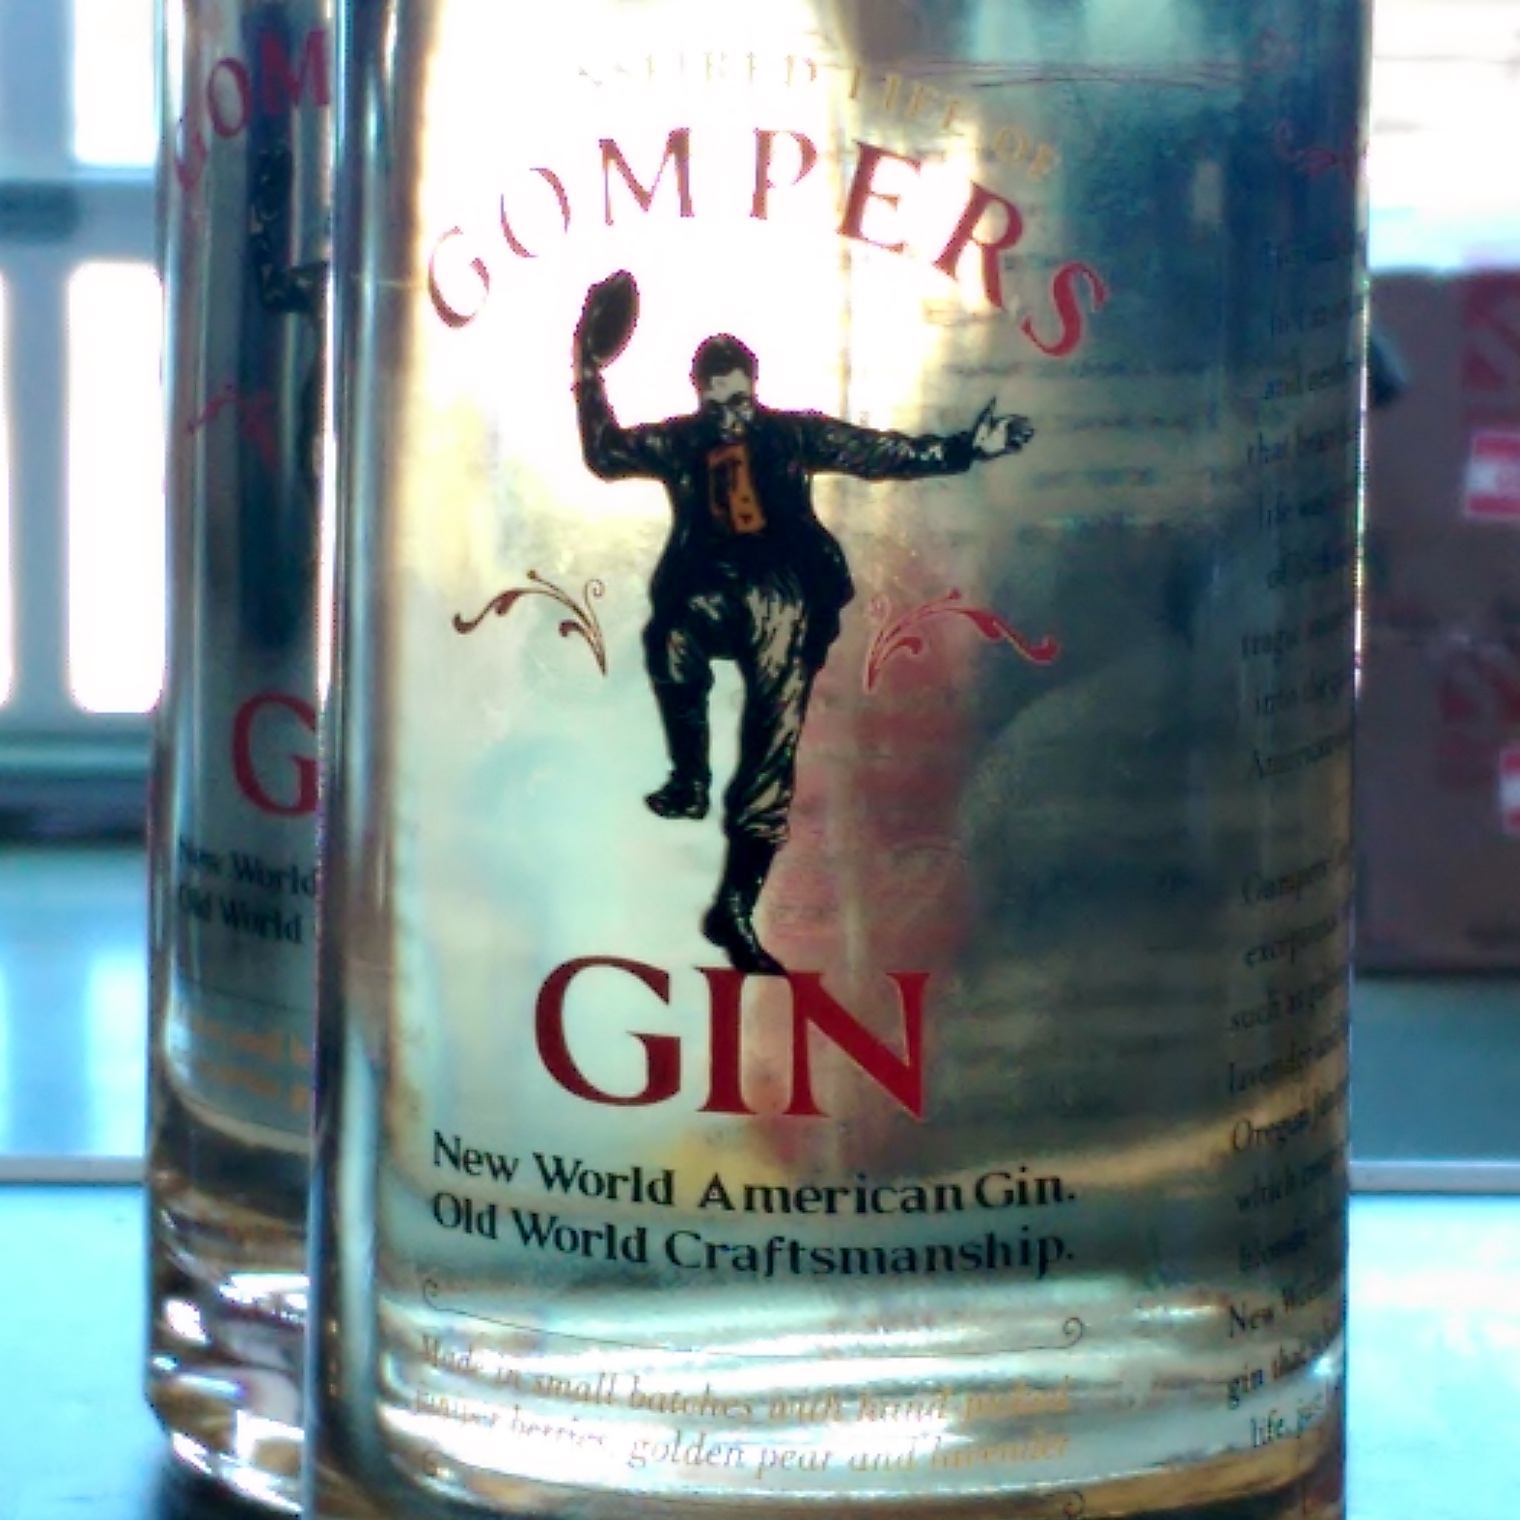 Gomper's Gin. Photo by Cocktail Crafty